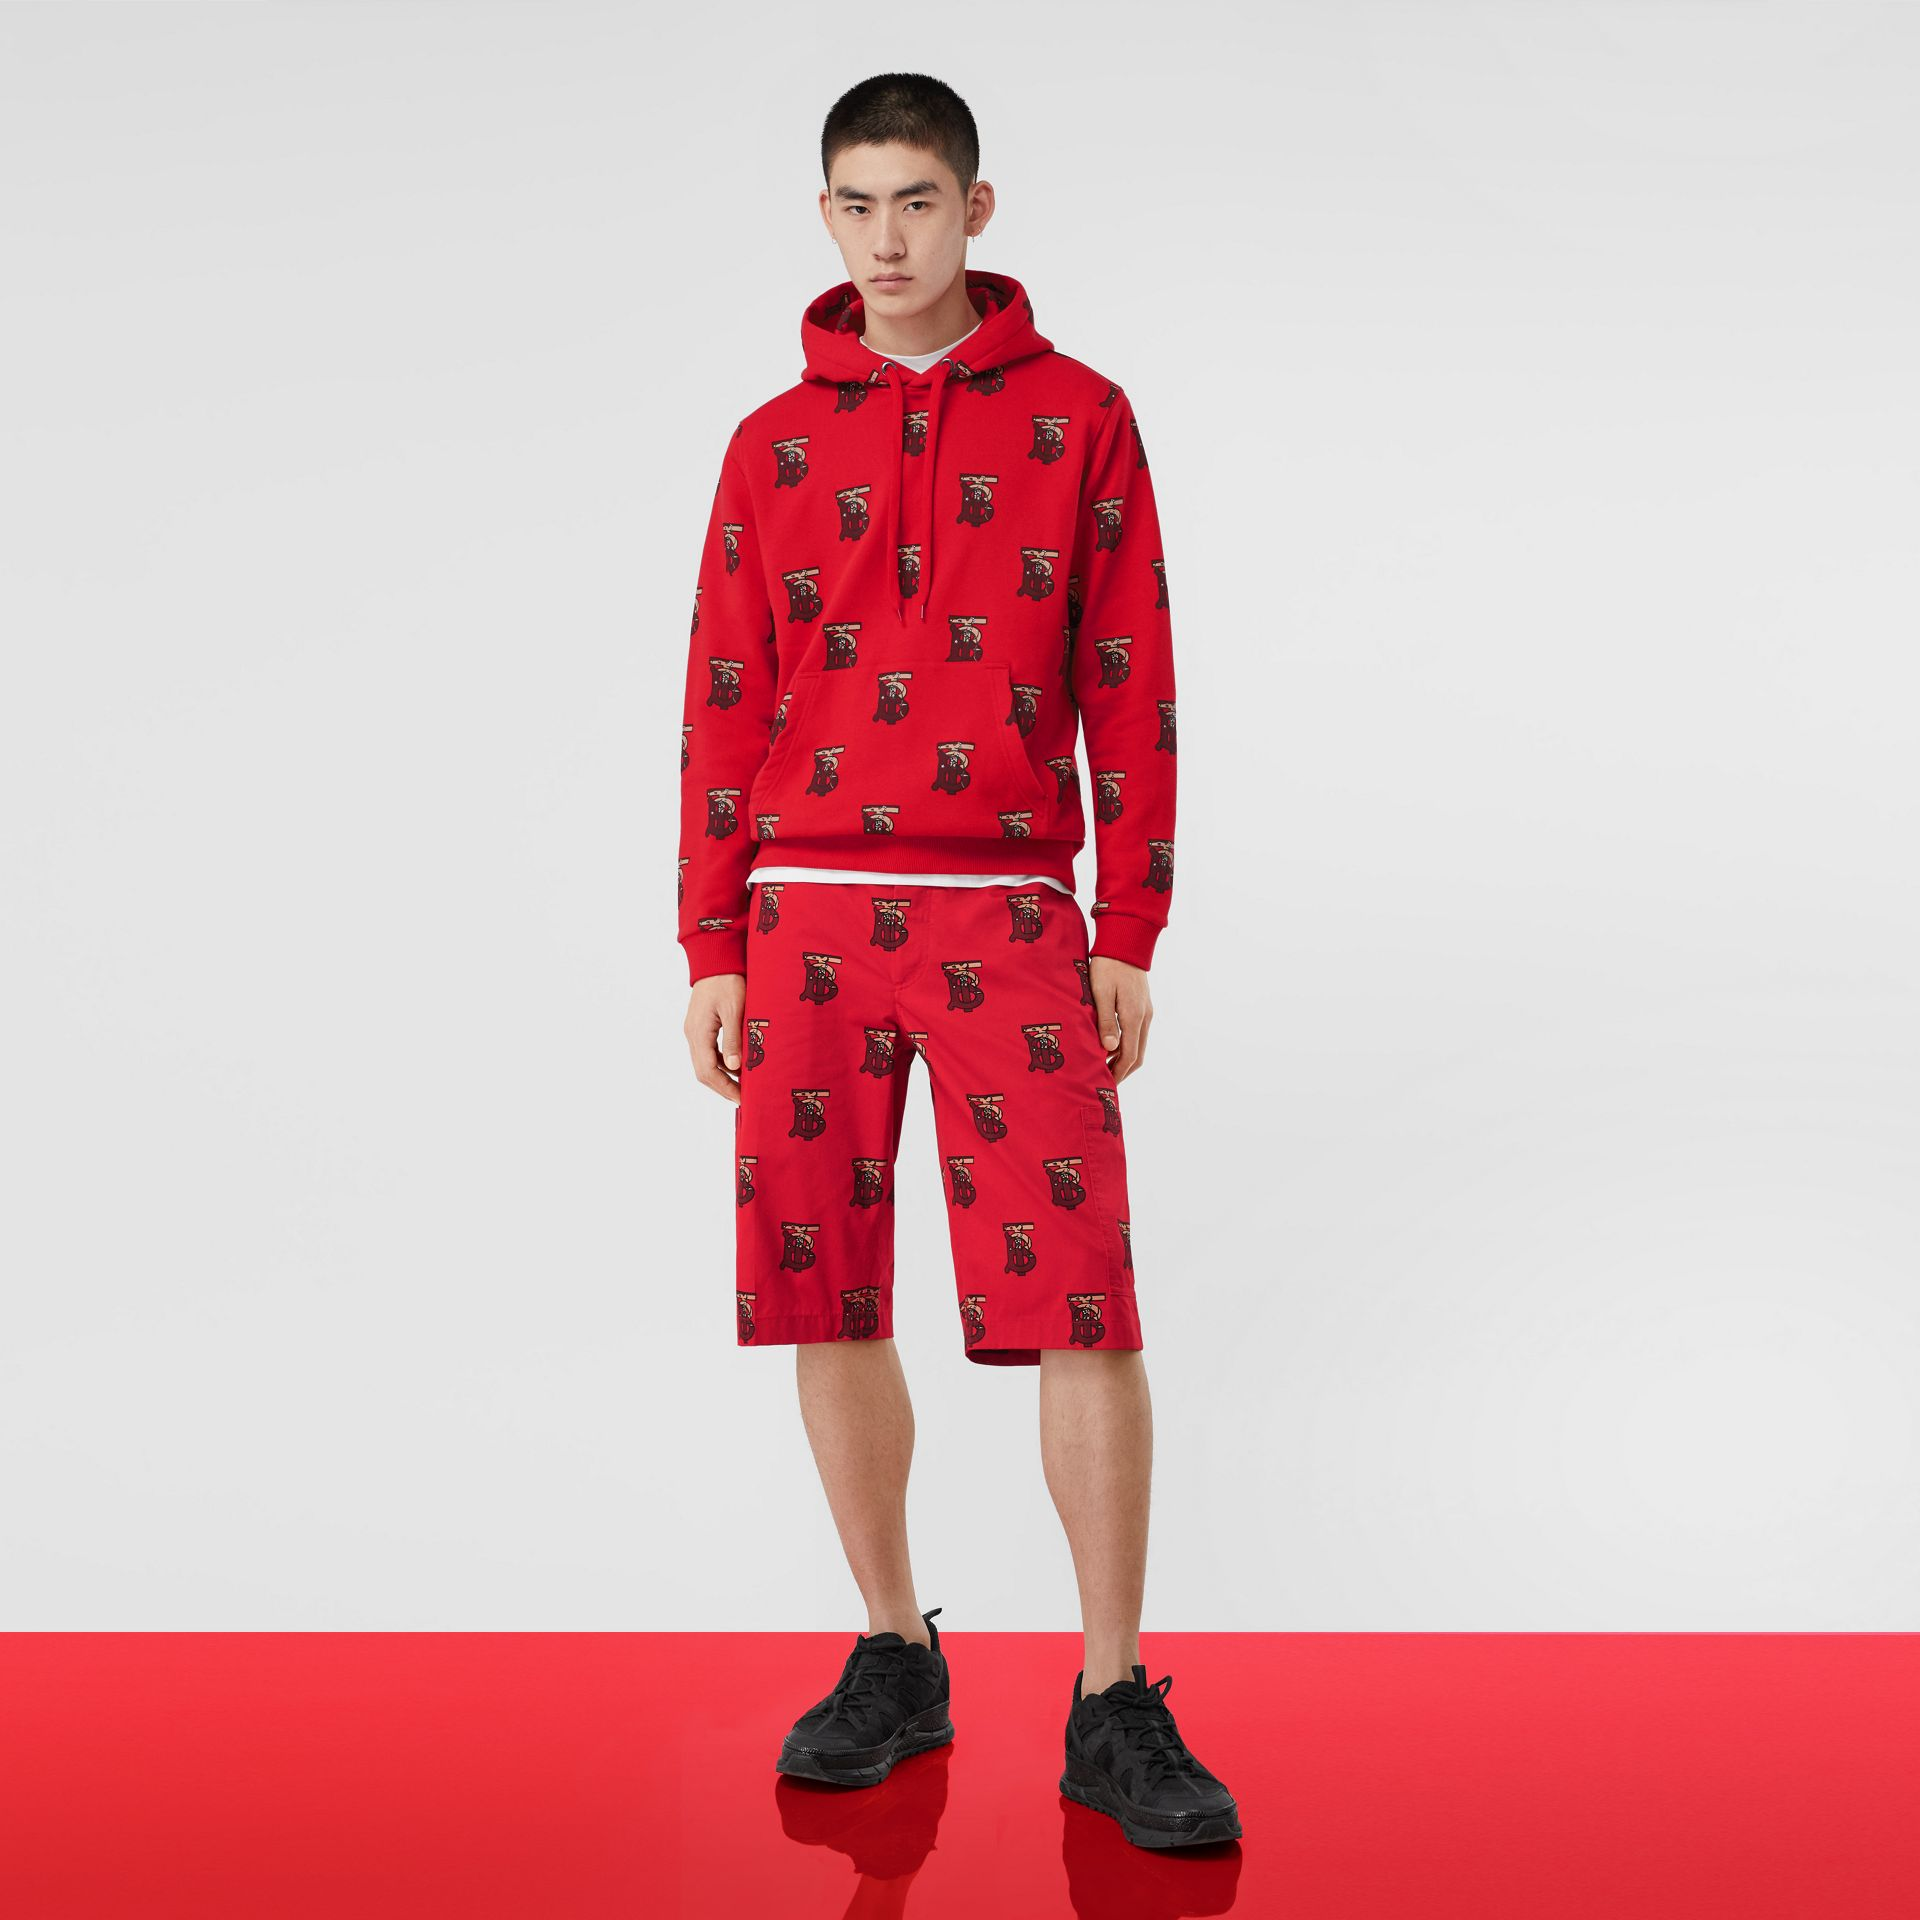 Monogram Motif Cotton Oversized Hoodie in Bright Red - Men | Burberry - gallery image 5